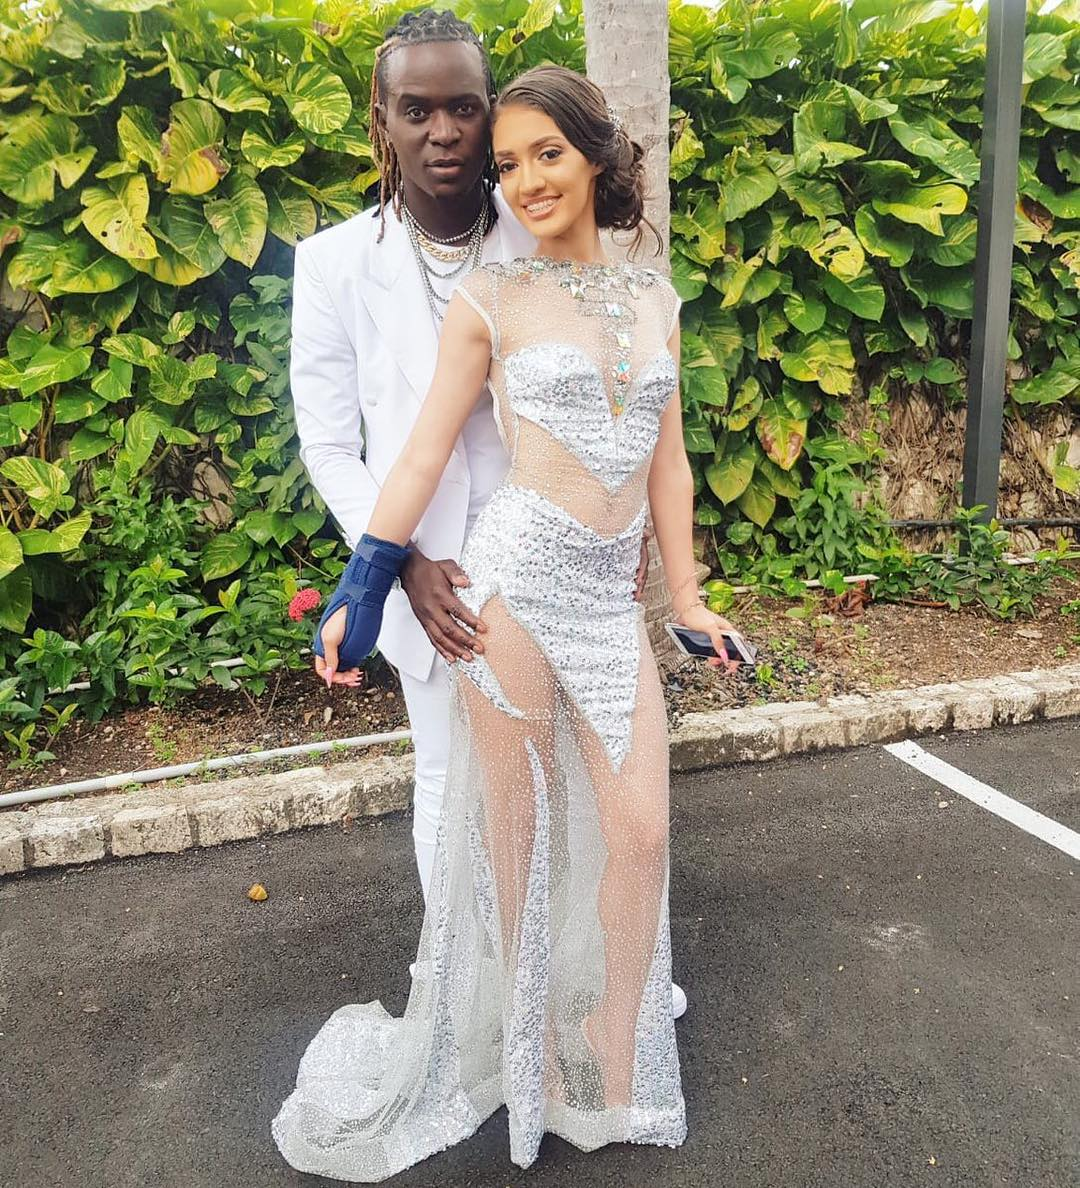 Willy Paul and Samantha J